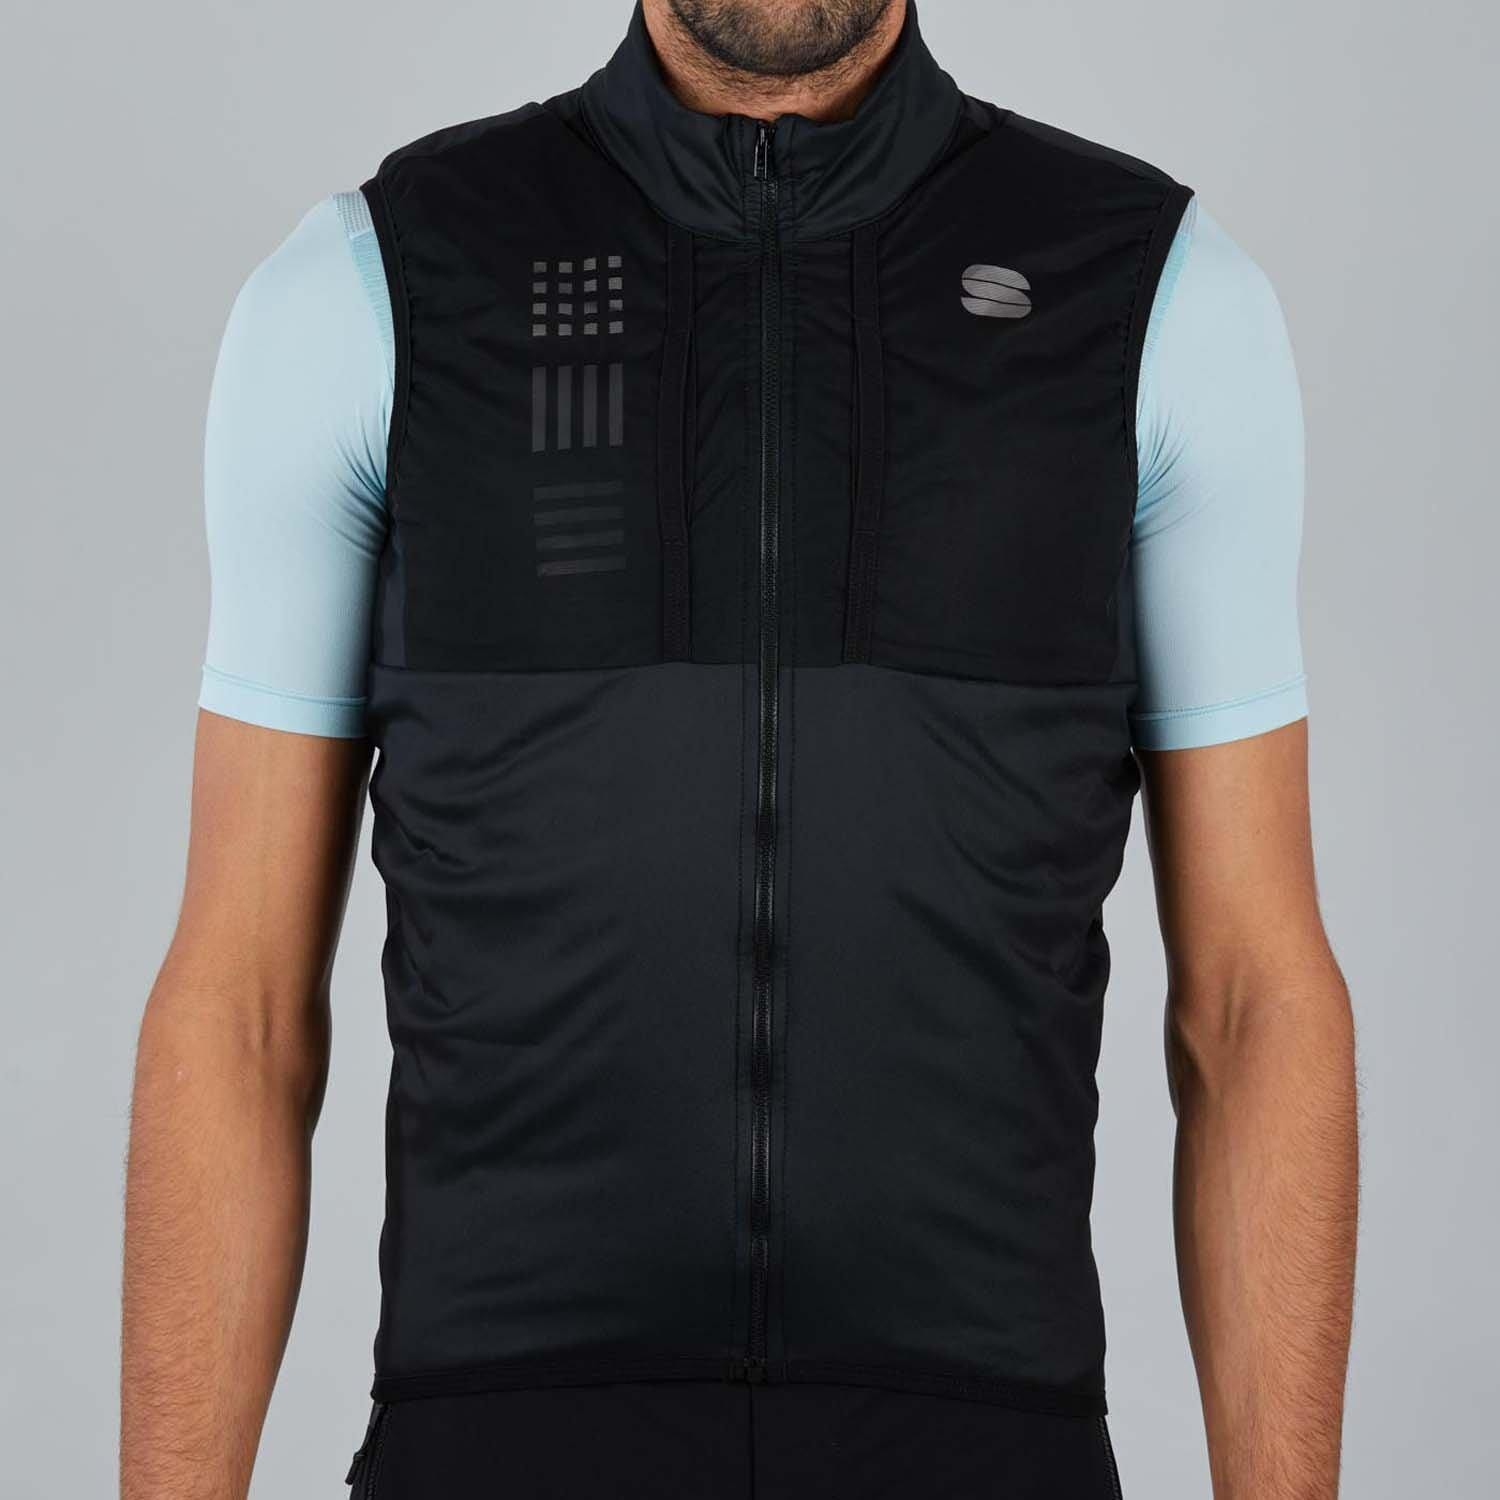 Sportful-Sportful Giara Layer Vest-Black-S-SF205060022-saddleback-elite-performance-cycling